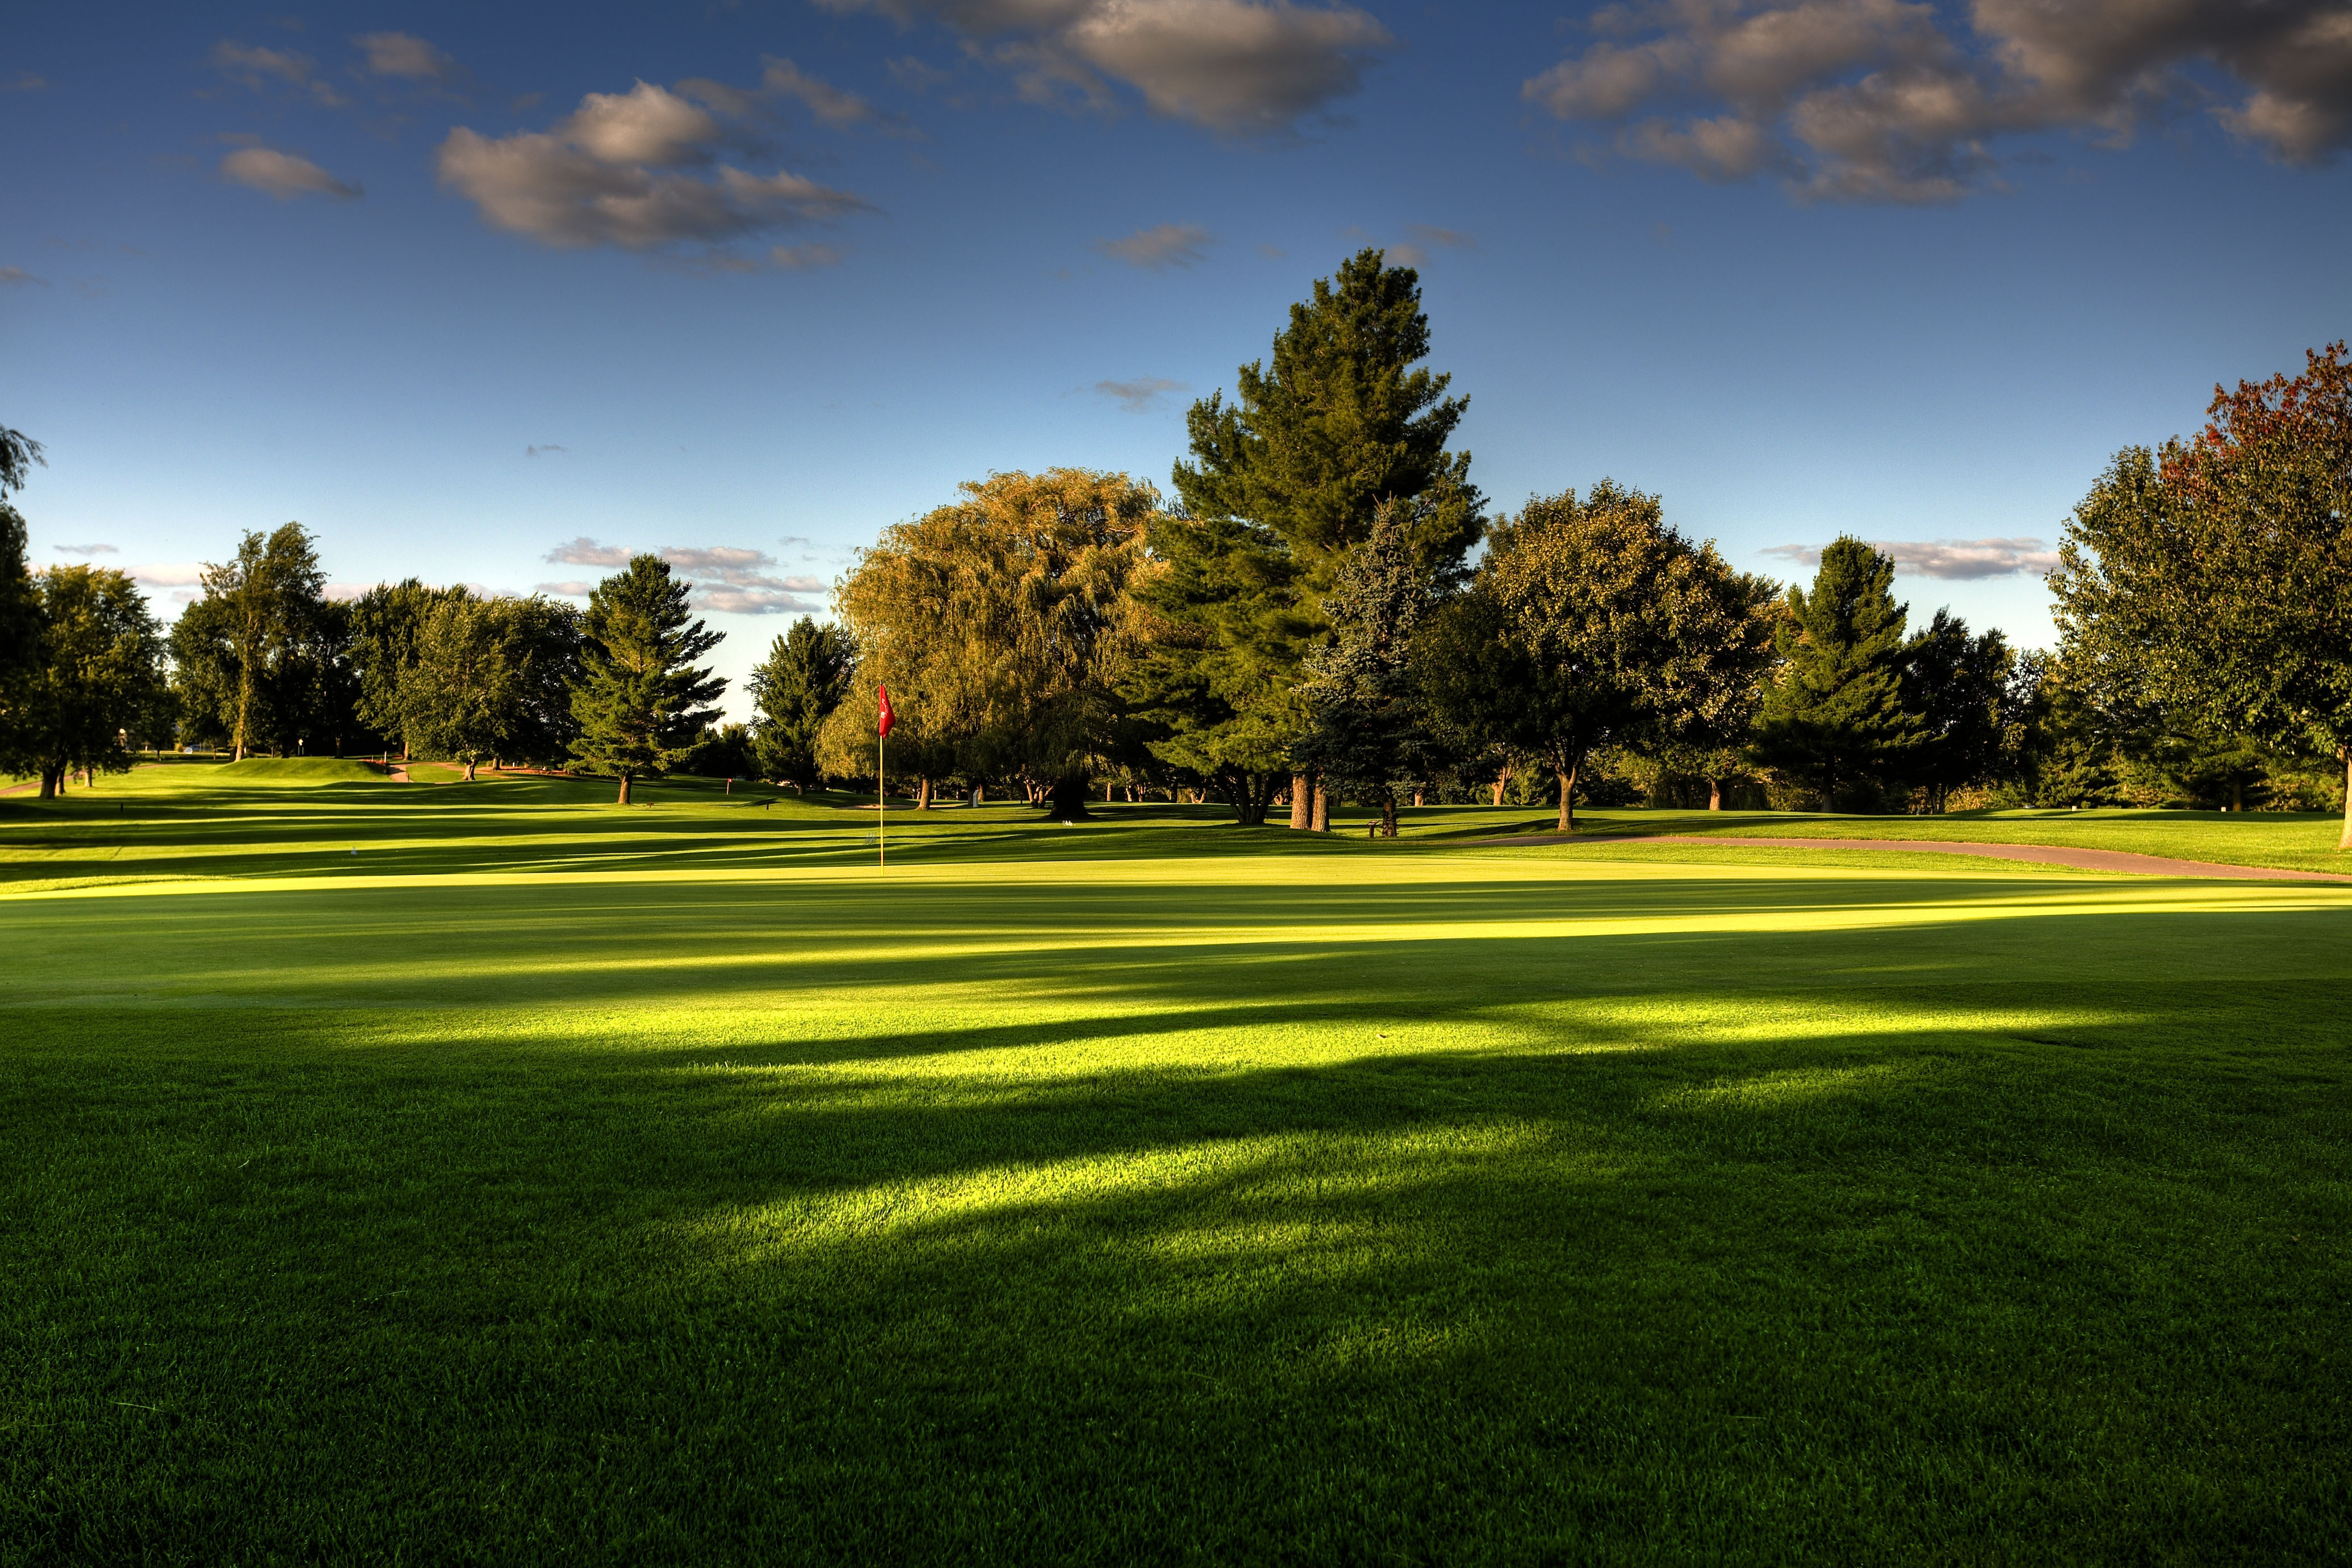 93689 download wallpaper Nature, Trees, Golf, Field, Lawn screensavers and pictures for free